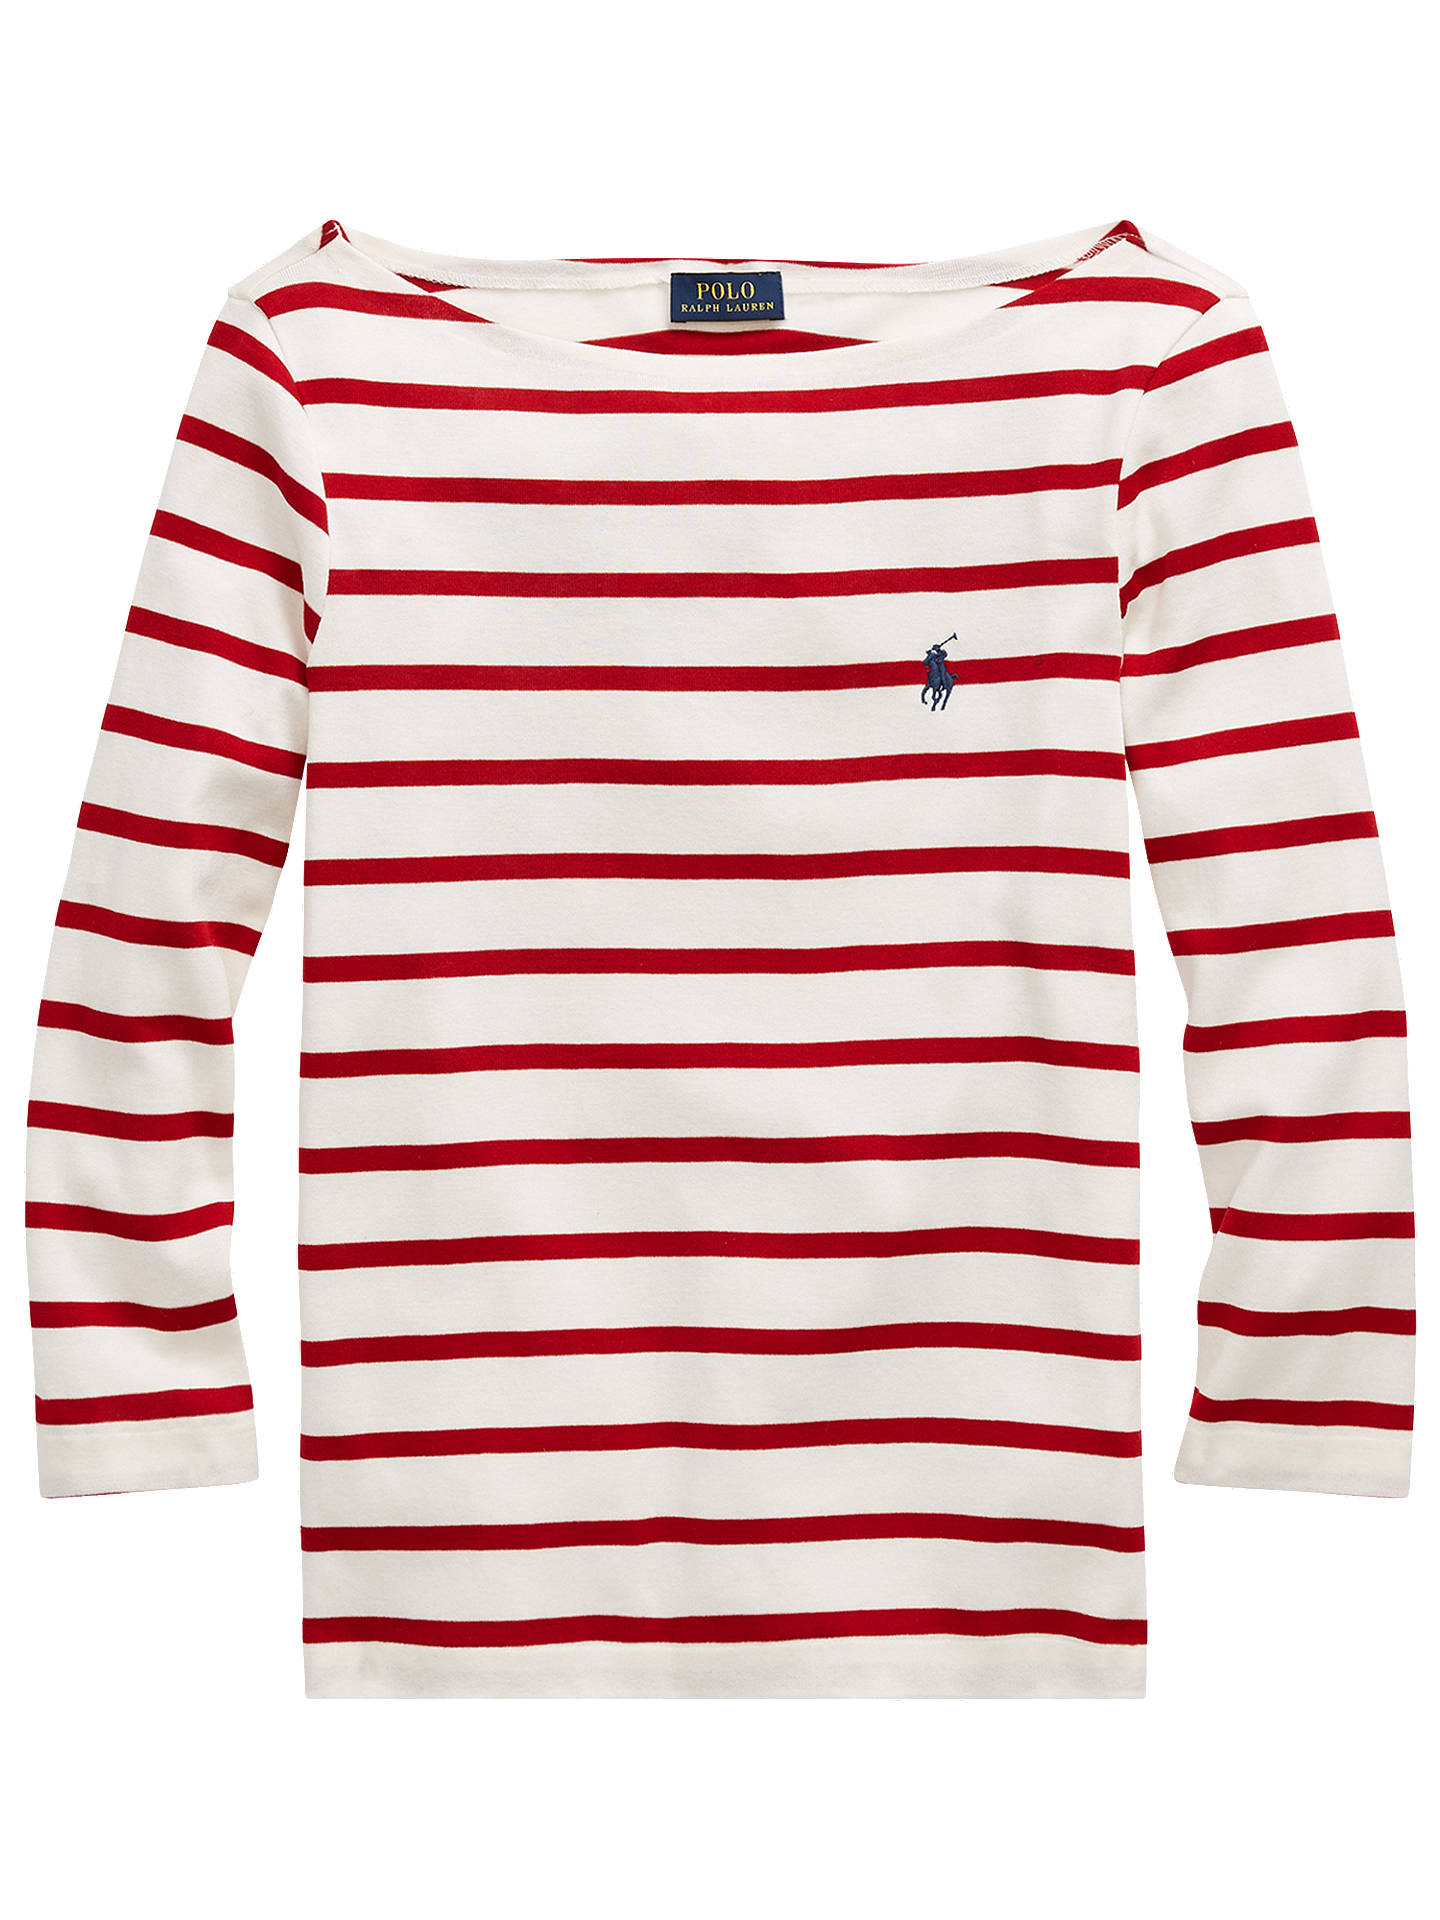 36b2225c134ae7 ... Buy Polo Ralph Lauren Stripe Cotton Boat Neck T-Shirt, Nevis/Martin Red